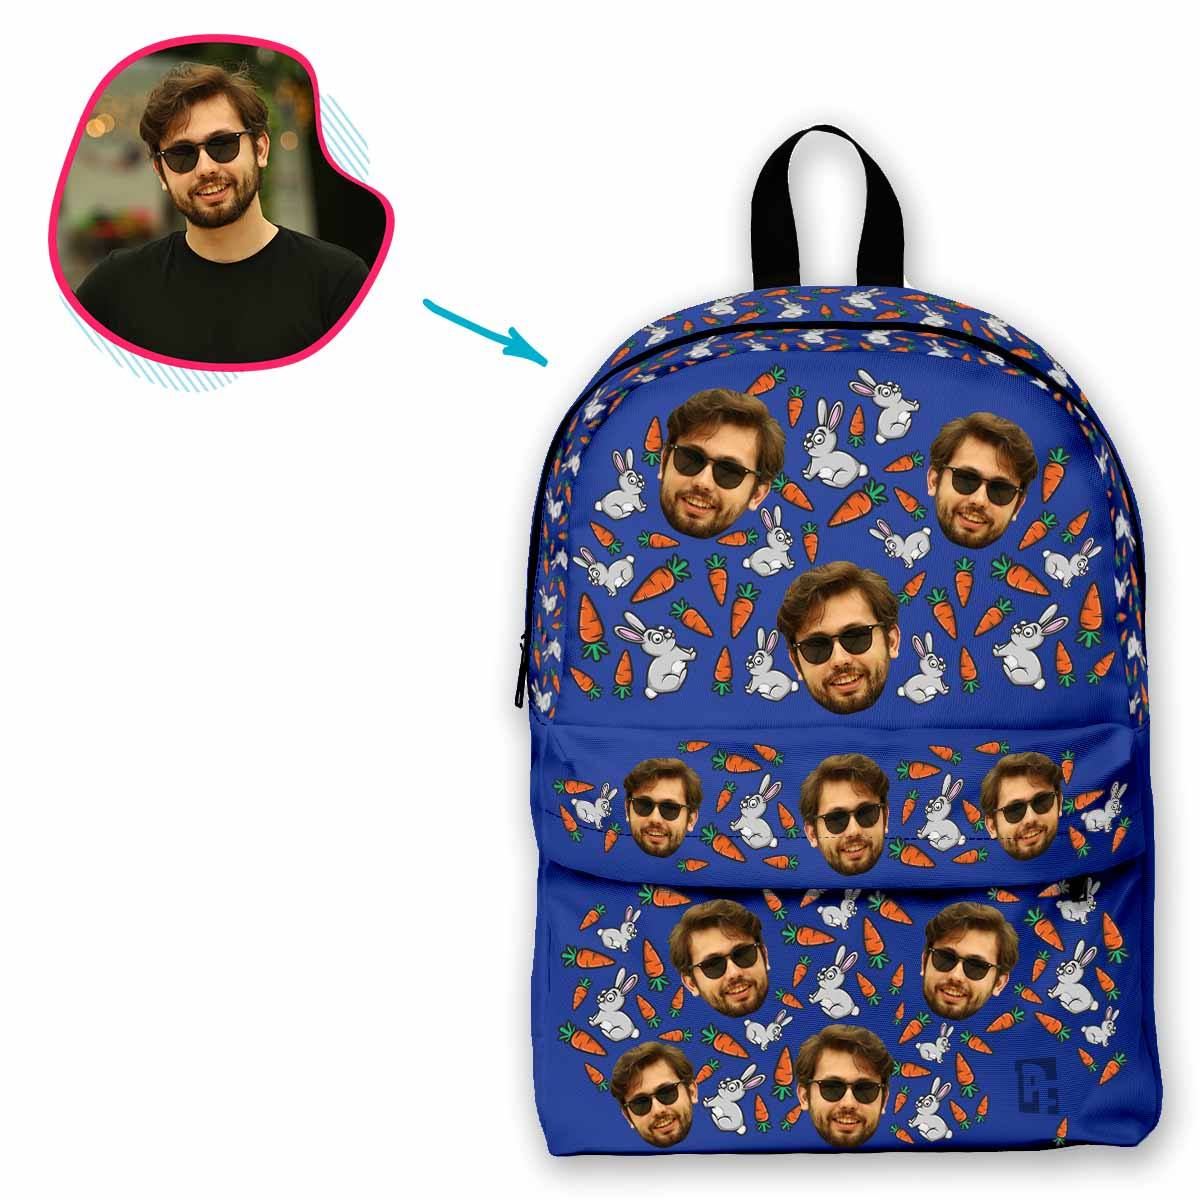 darkblue Bunny classic backpack personalized with photo of face printed on it